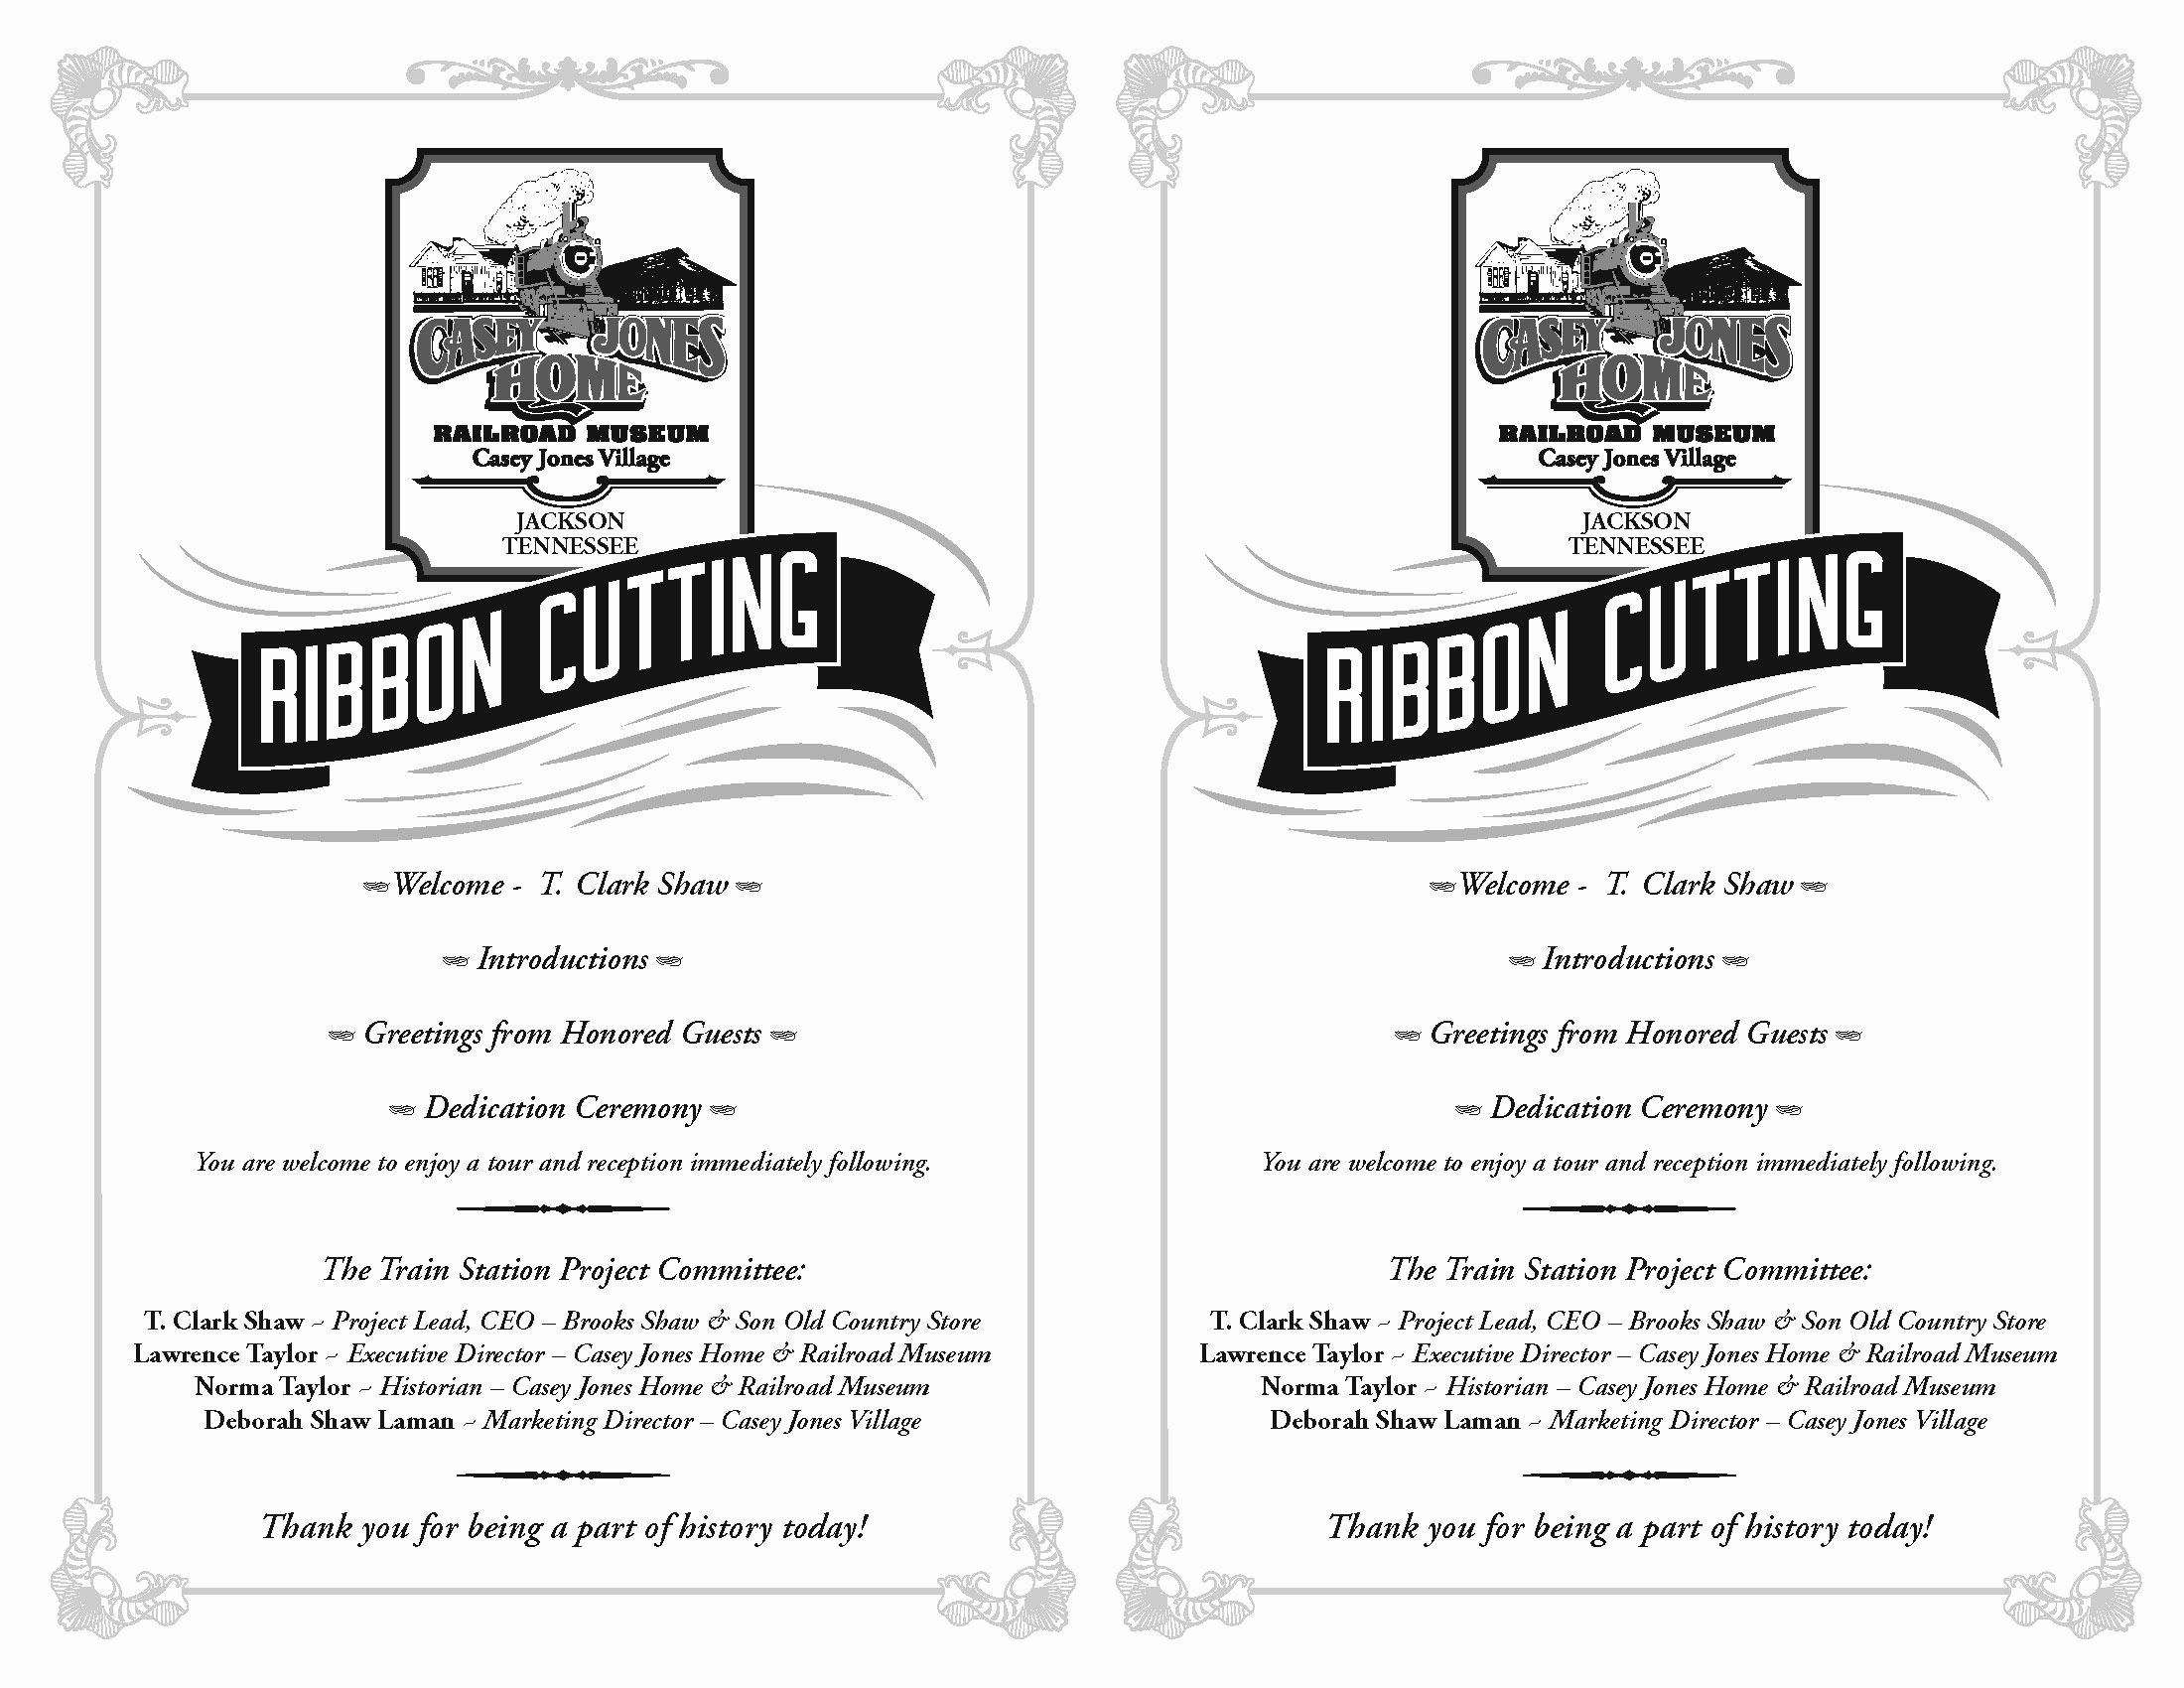 Ribbon Cutting Ceremony Invitation Template Luxury Pin On Military Inspiration